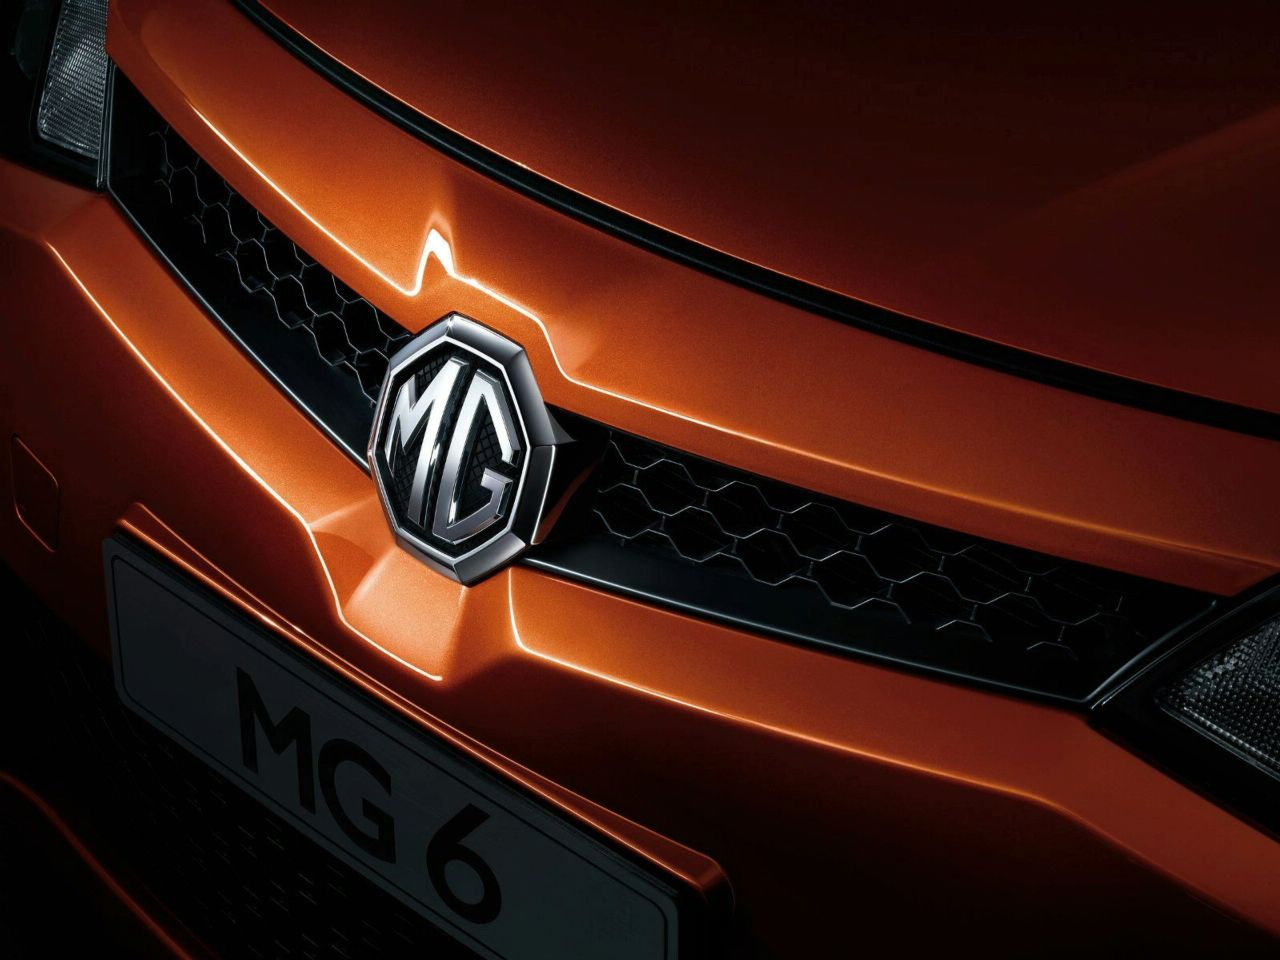 MG's parent company SAIC aiming big during for the future